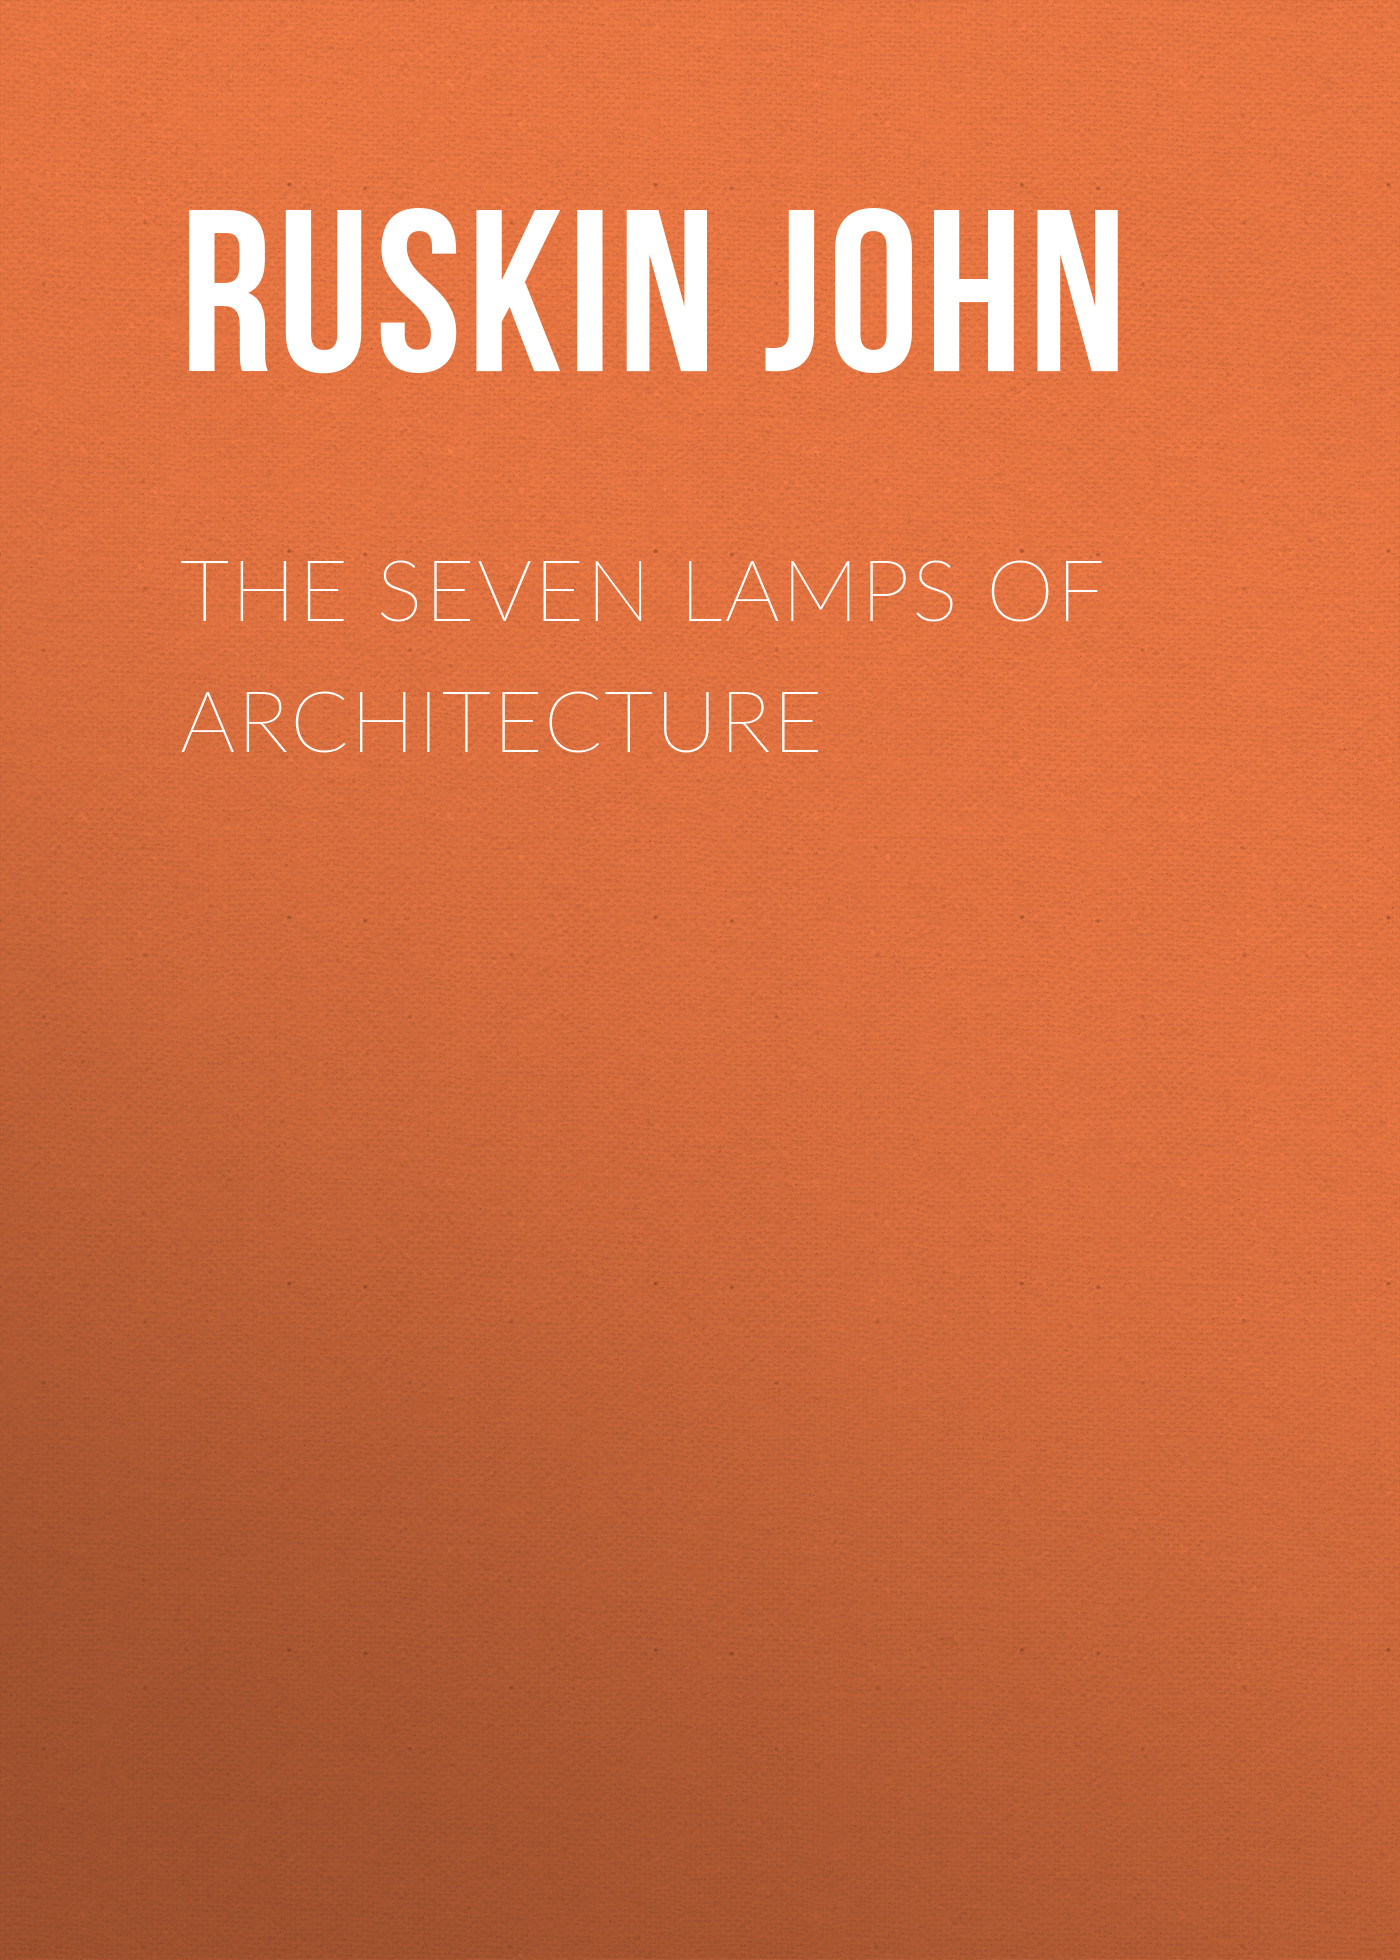 Ruskin John The Seven Lamps of Architecture ruskin john the poetry of architecture